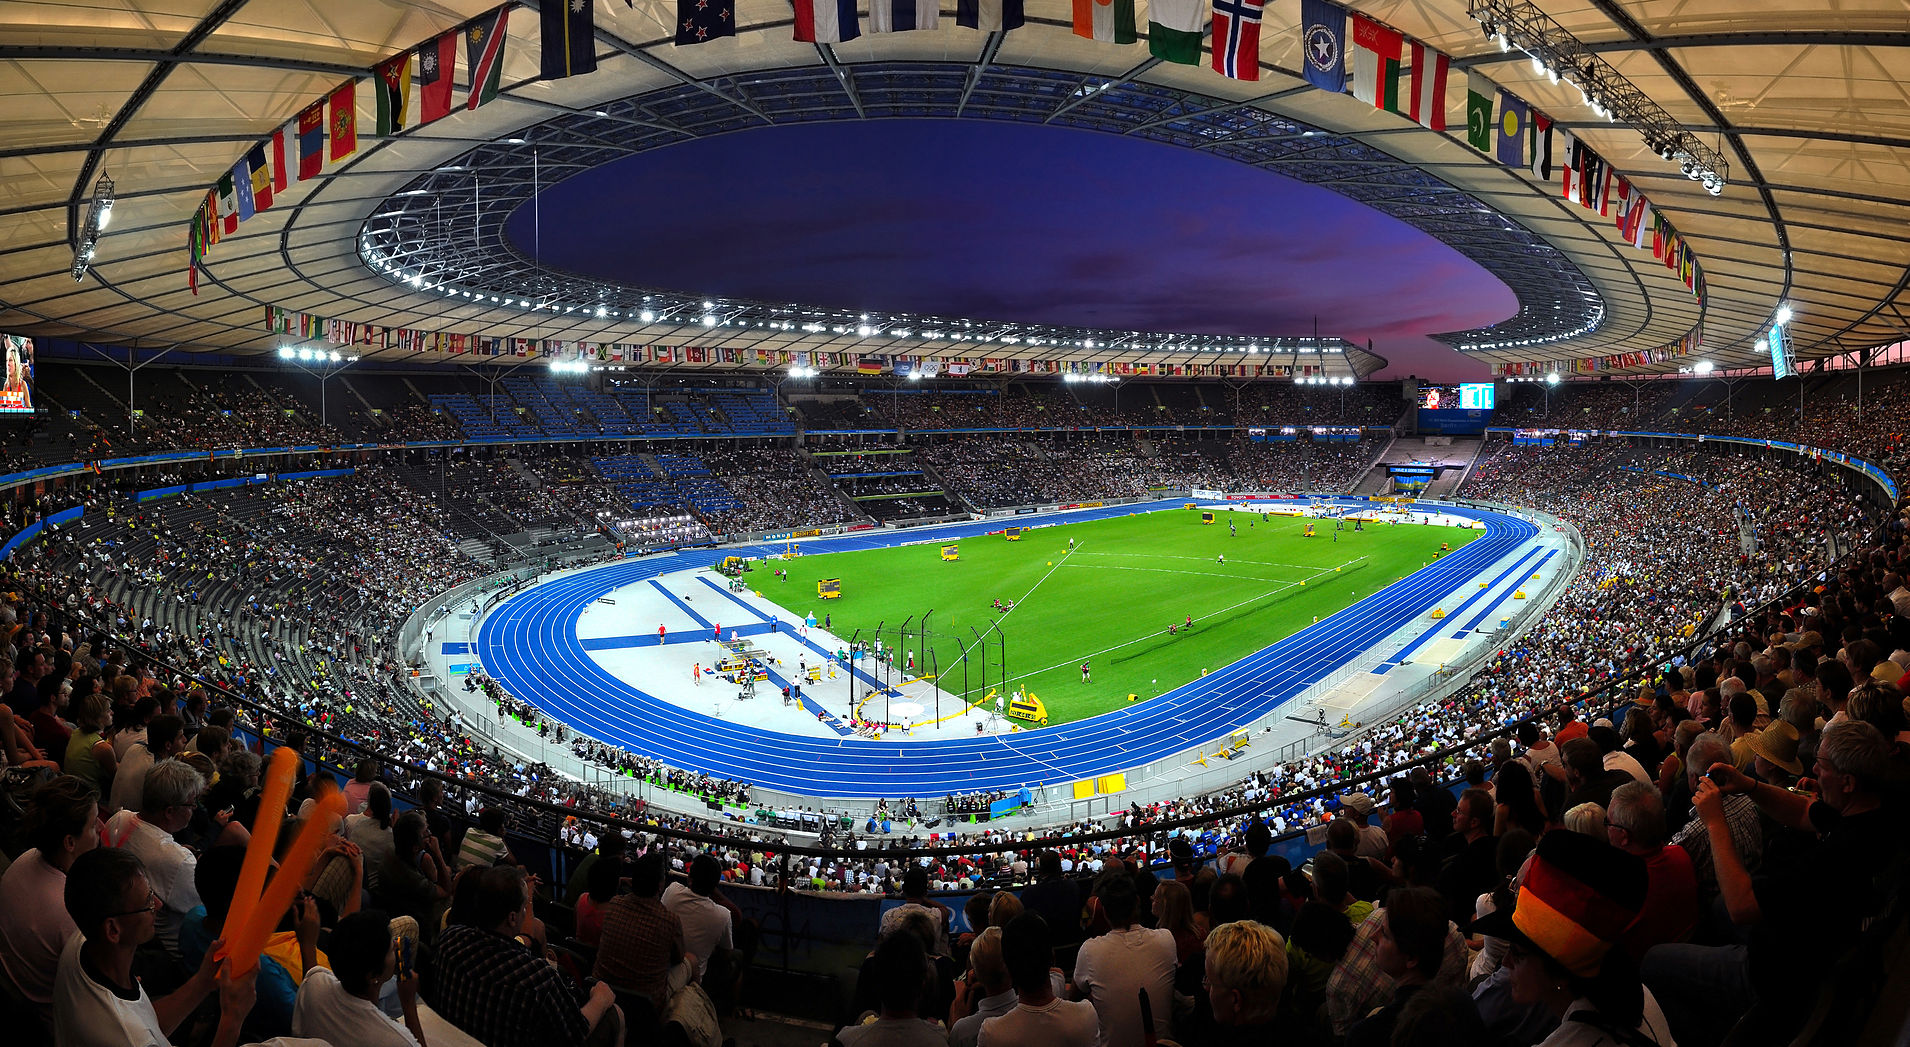 Hertha-Olympiastadion-Berlin-ine-wallpaper-wpc9001755